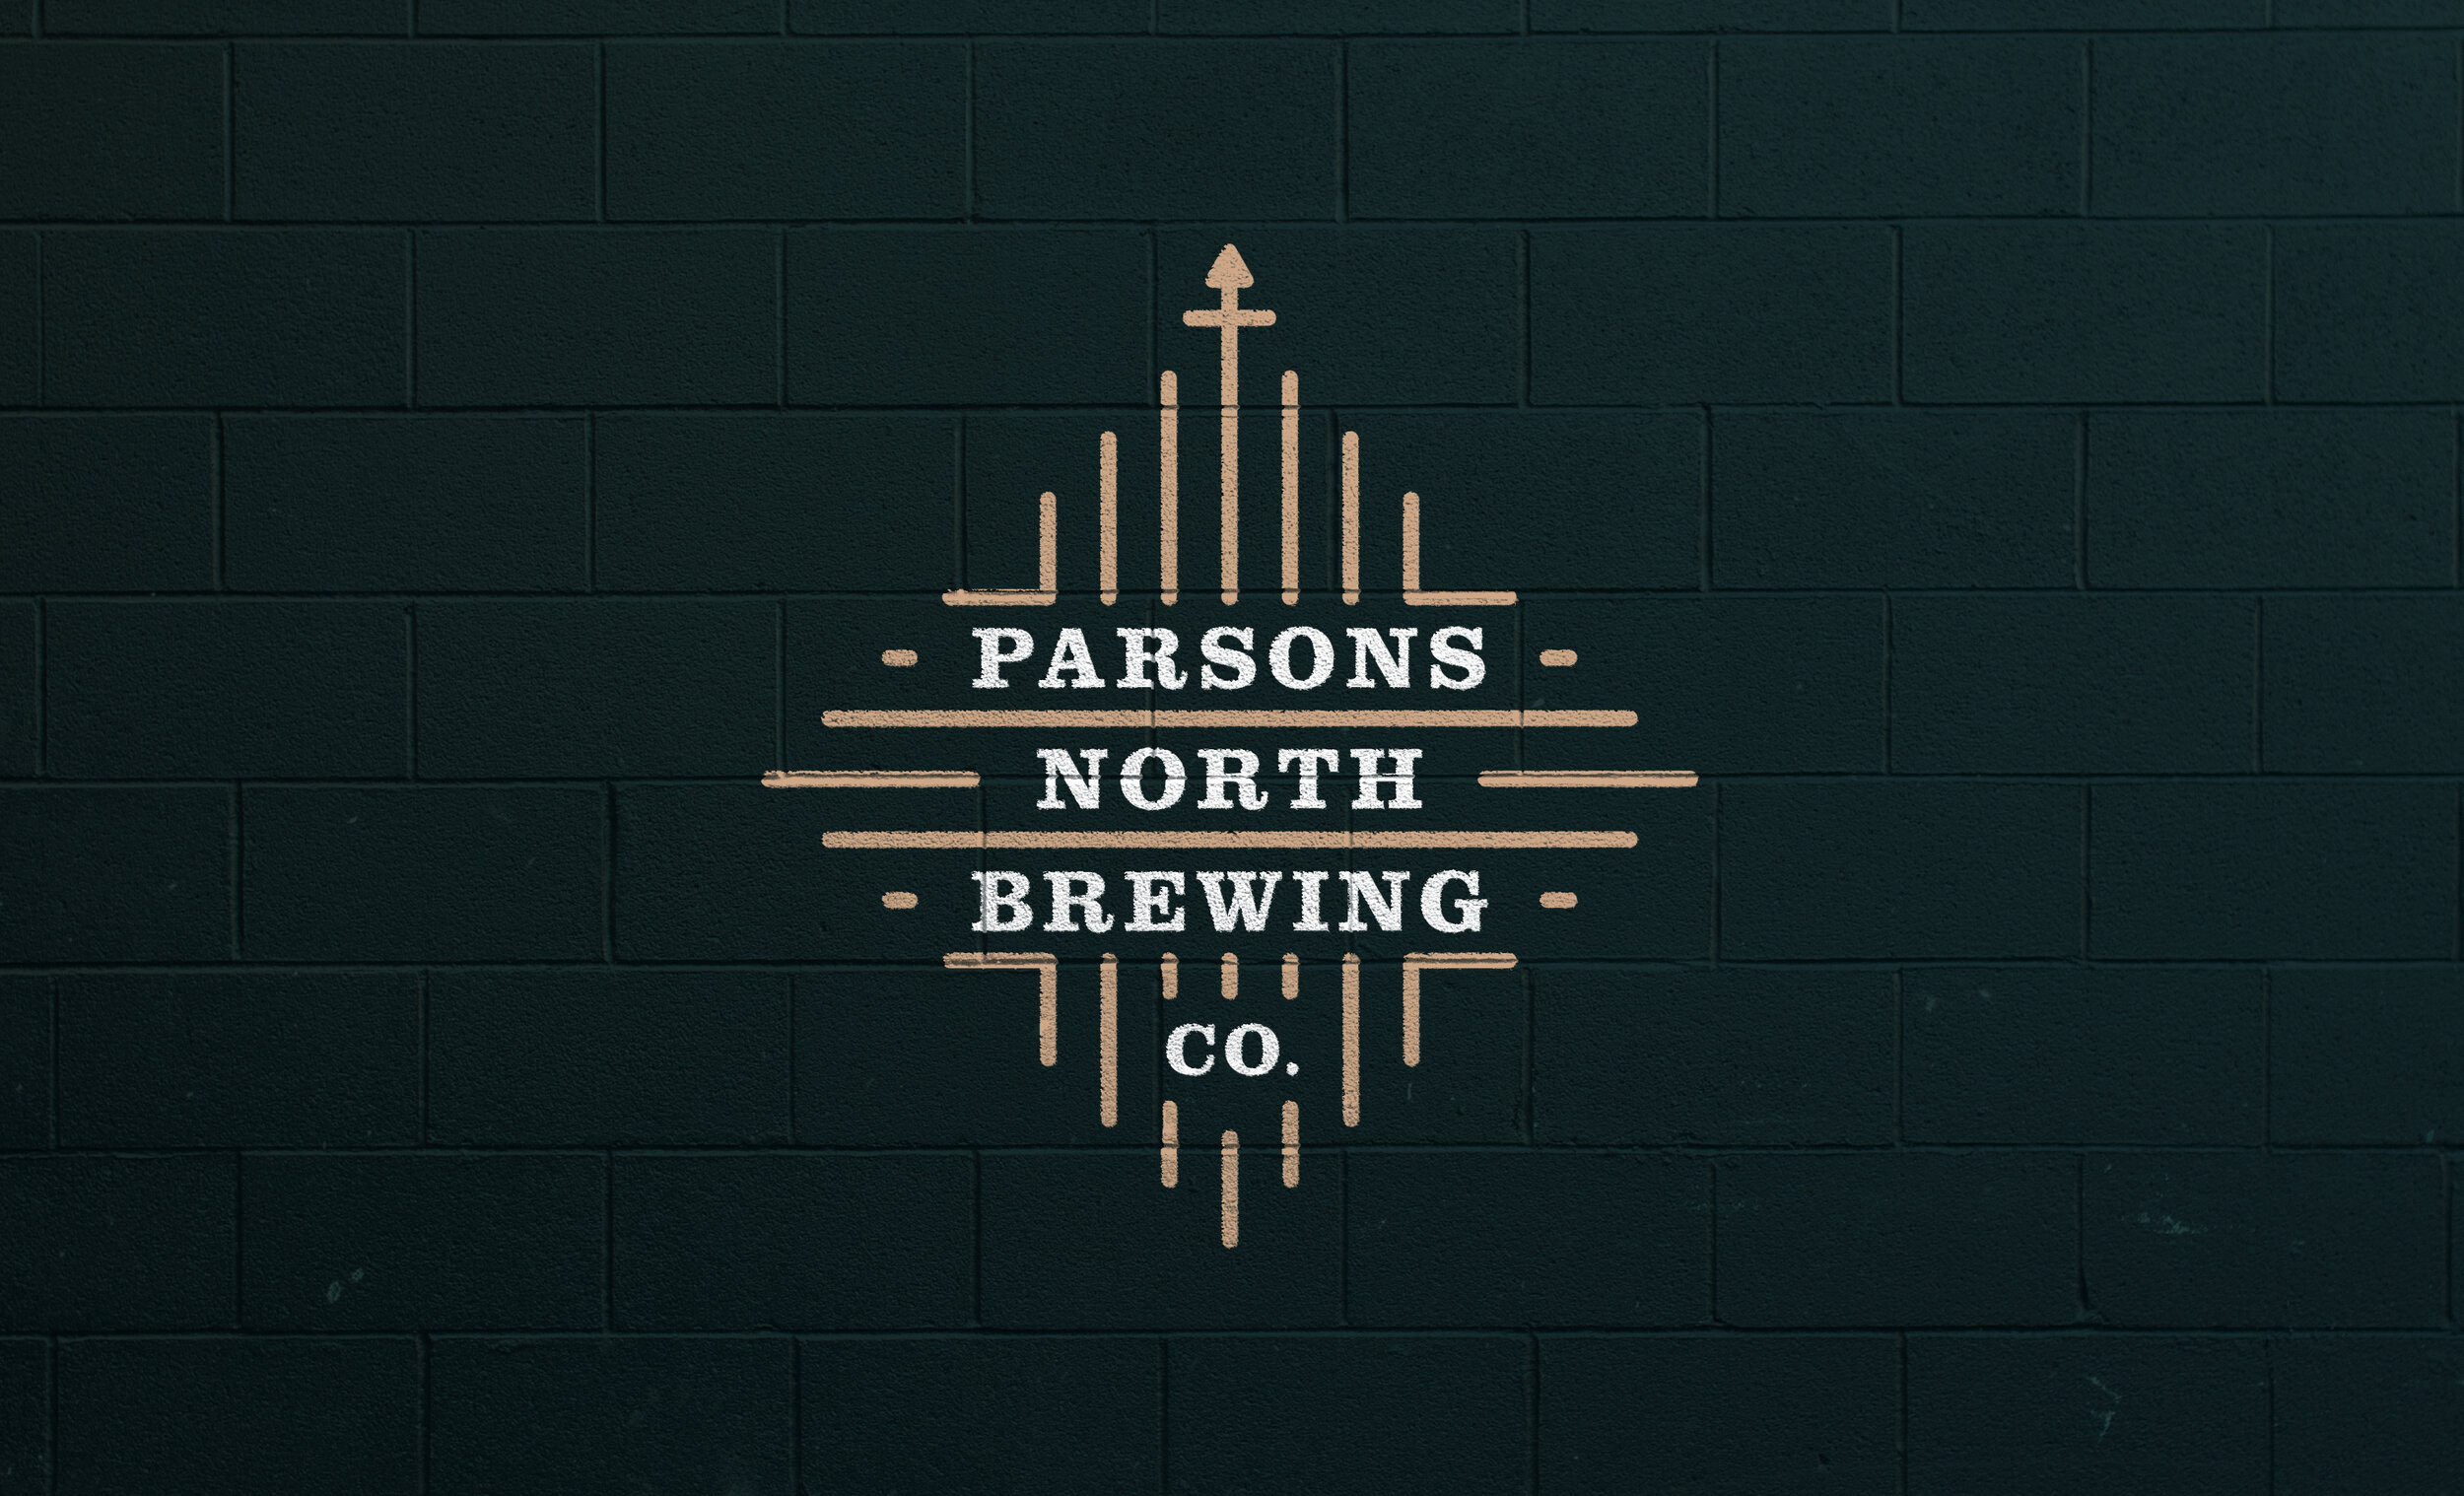 Parsons North Brewing Co.